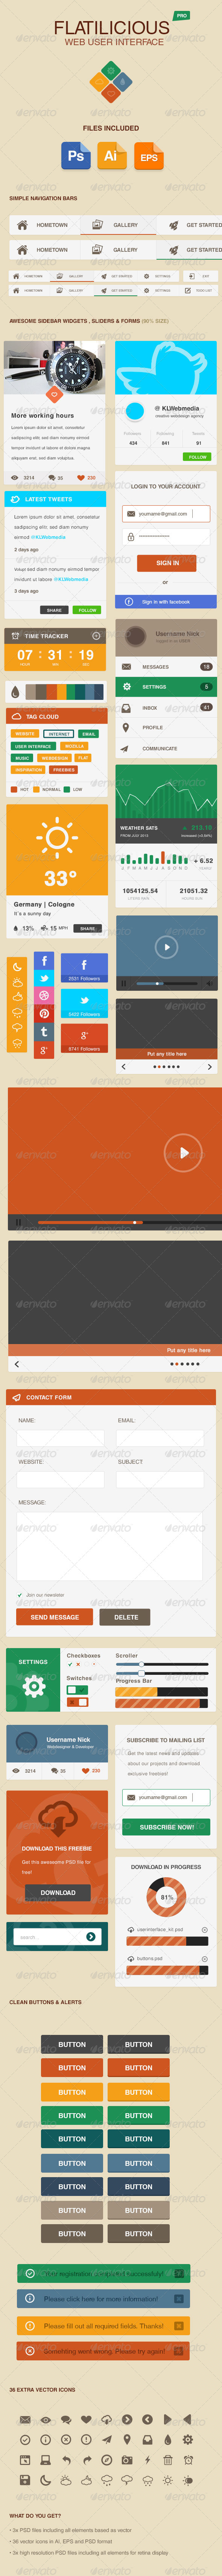 Flatilicious User Interface - User Interfaces Web Elements